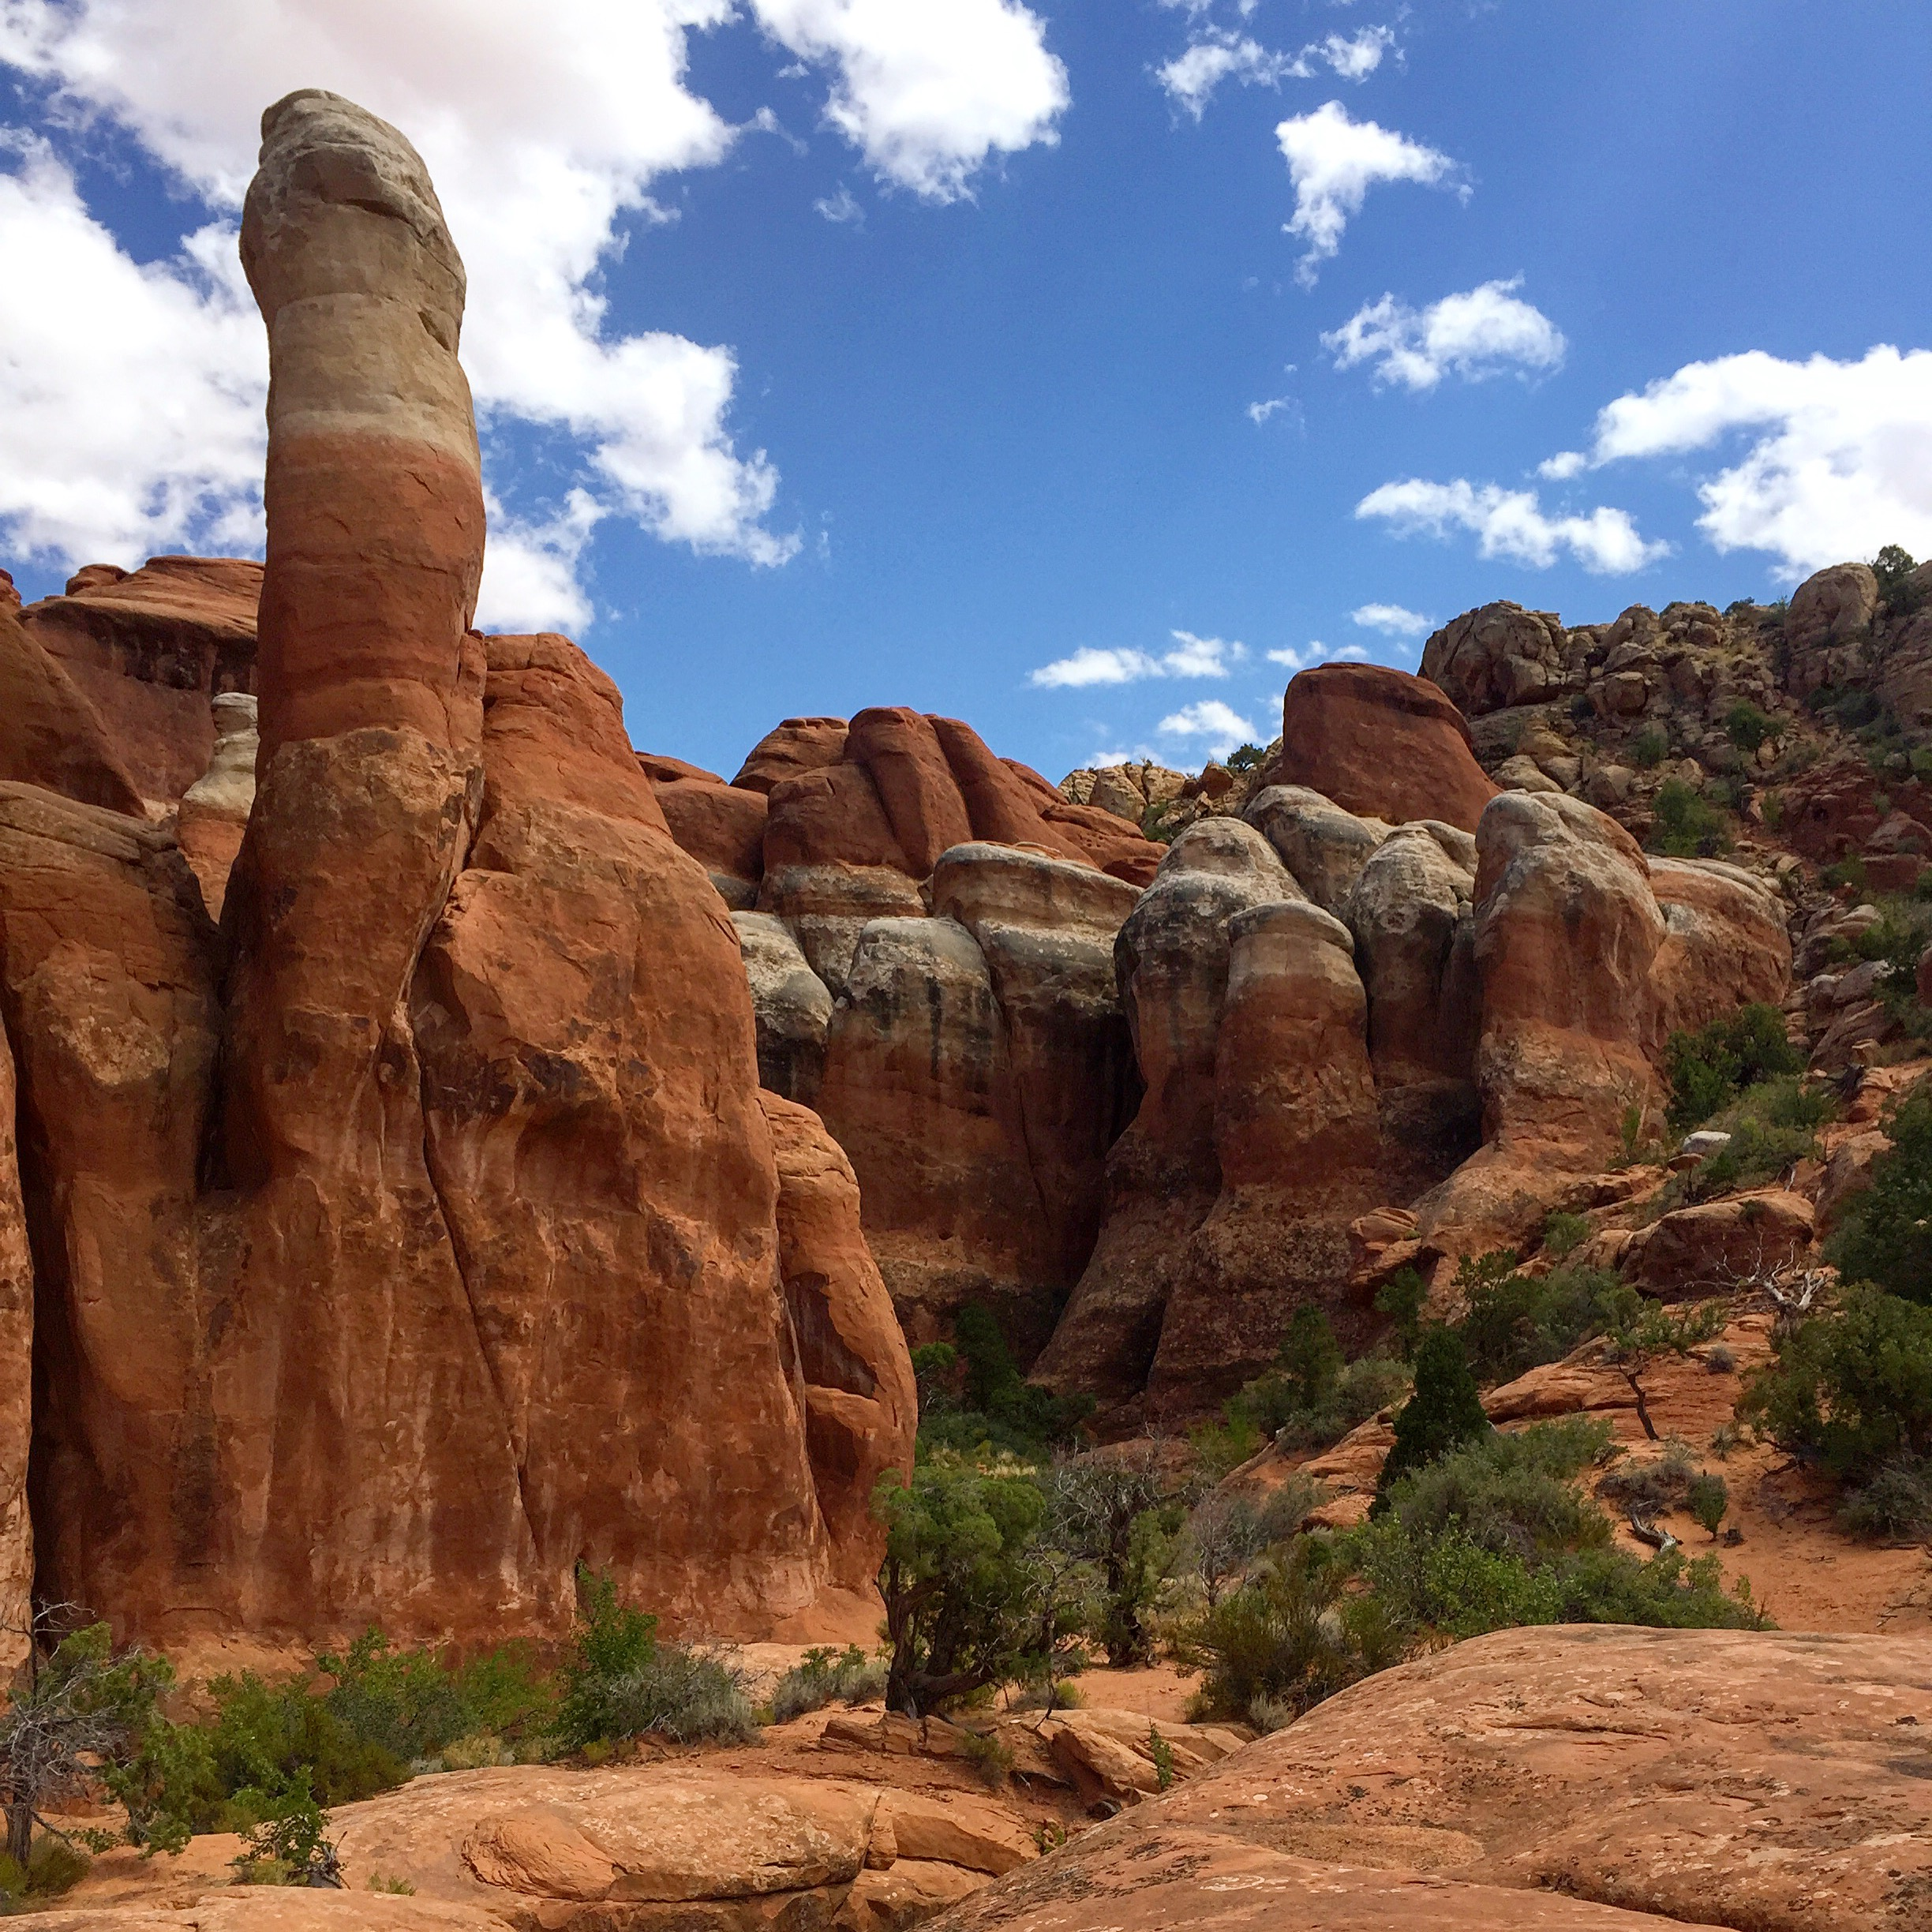 Arches National Park, 3 of 3: The Fiery Furnace  A Writer